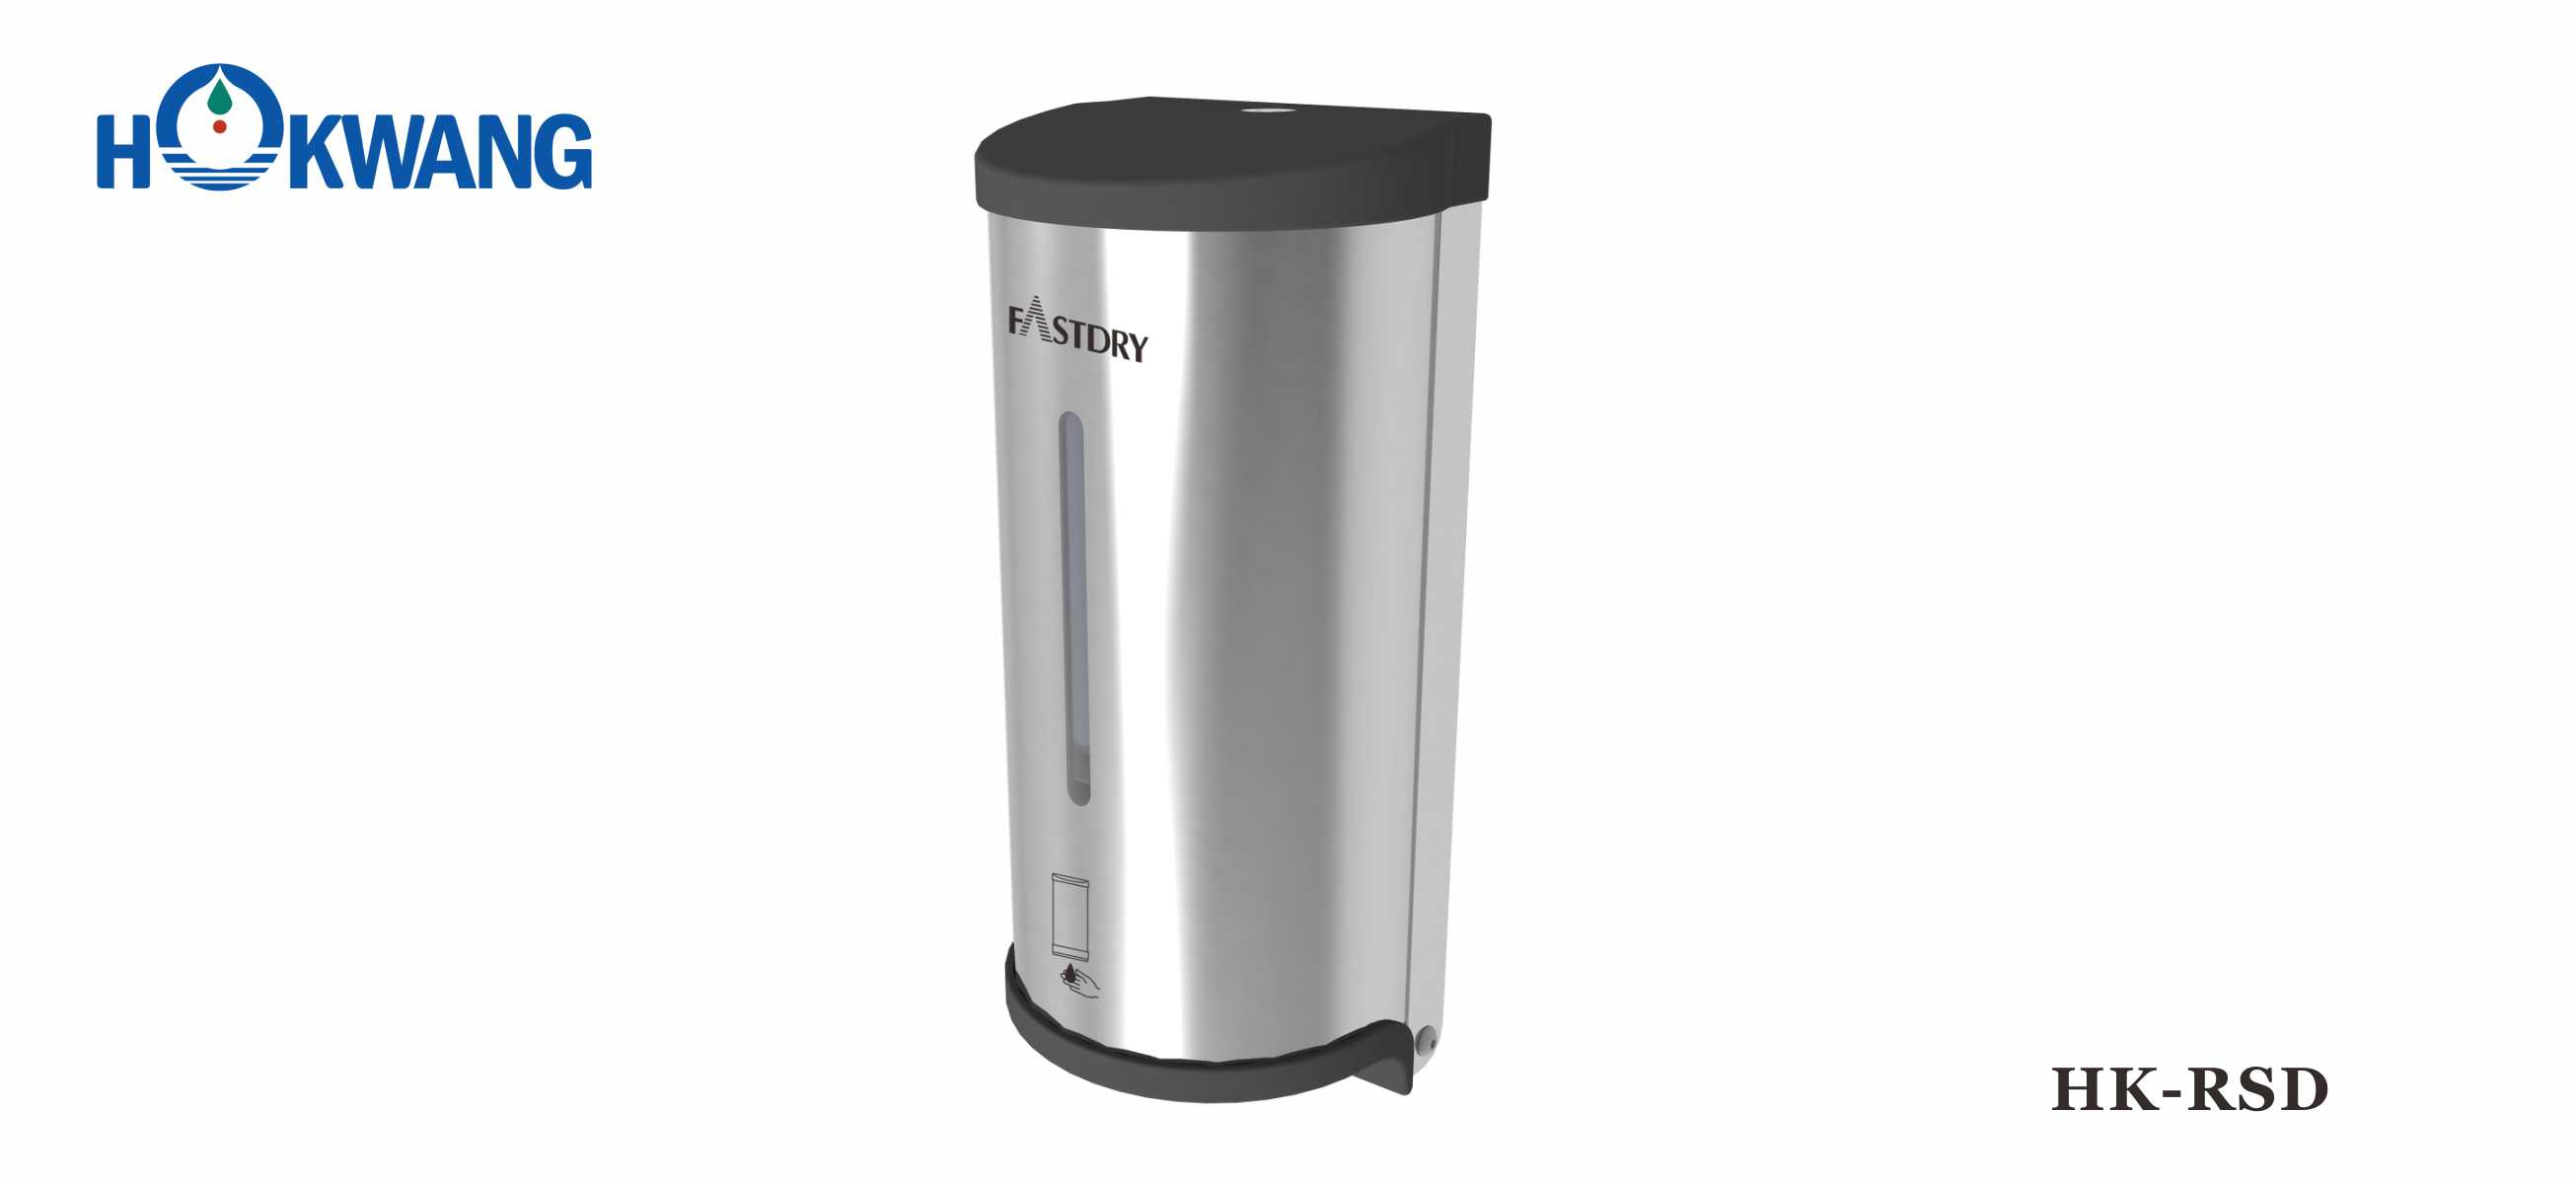 HK-RSD Auto Stainless Steel Liquid Soap Dispenser